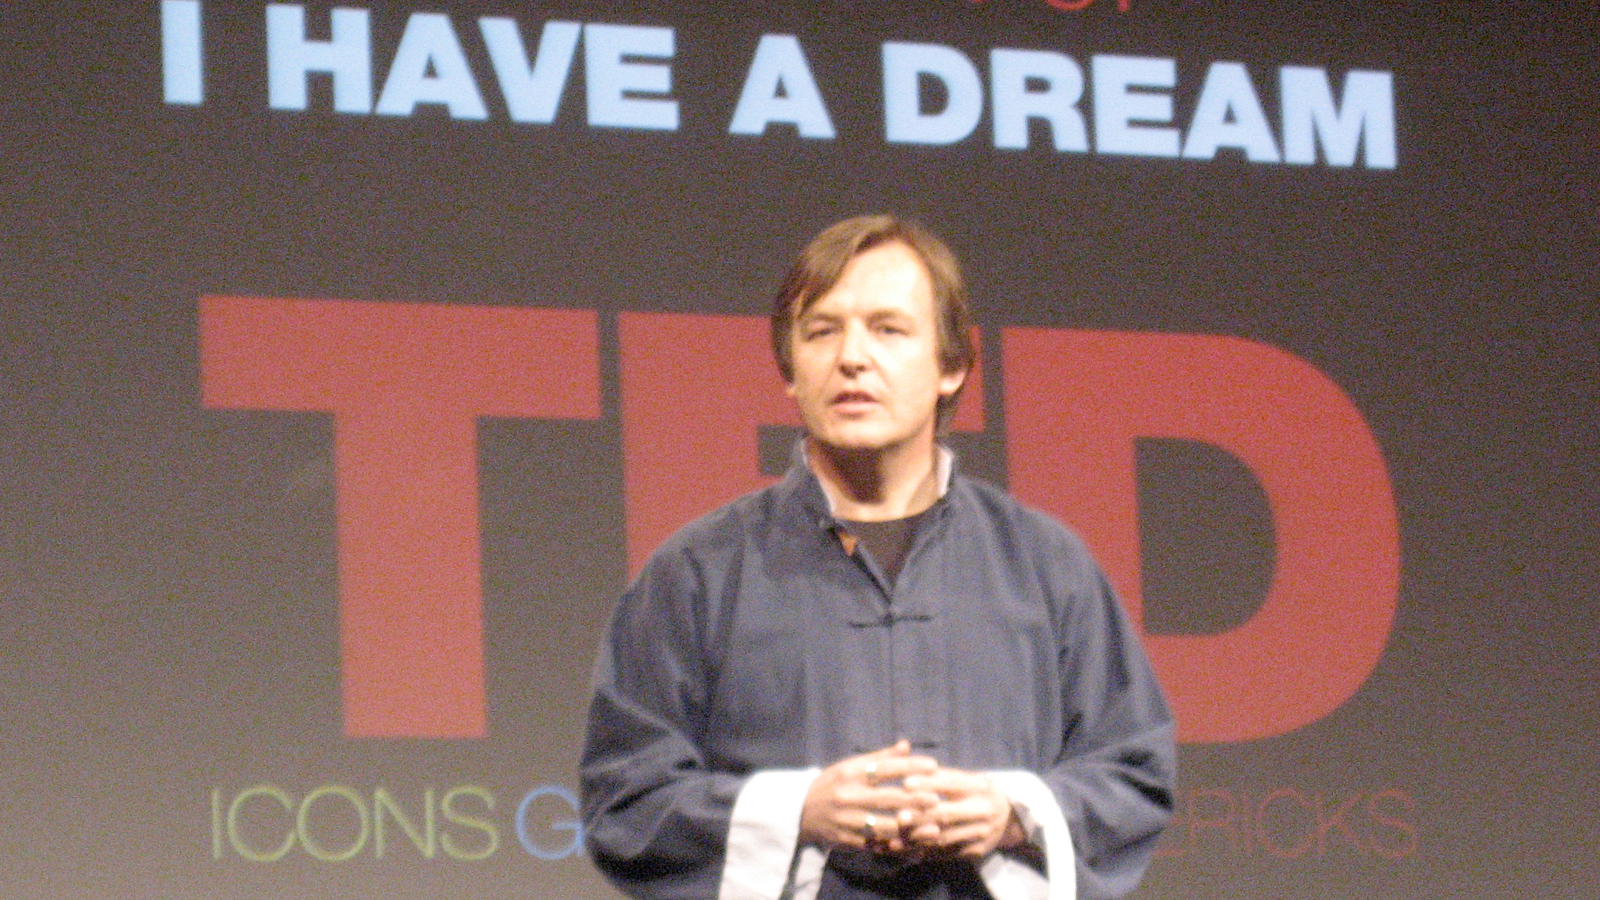 Click here to read Ask Chris Anderson, the Man Behind All Those TED Talks, Anything You Want